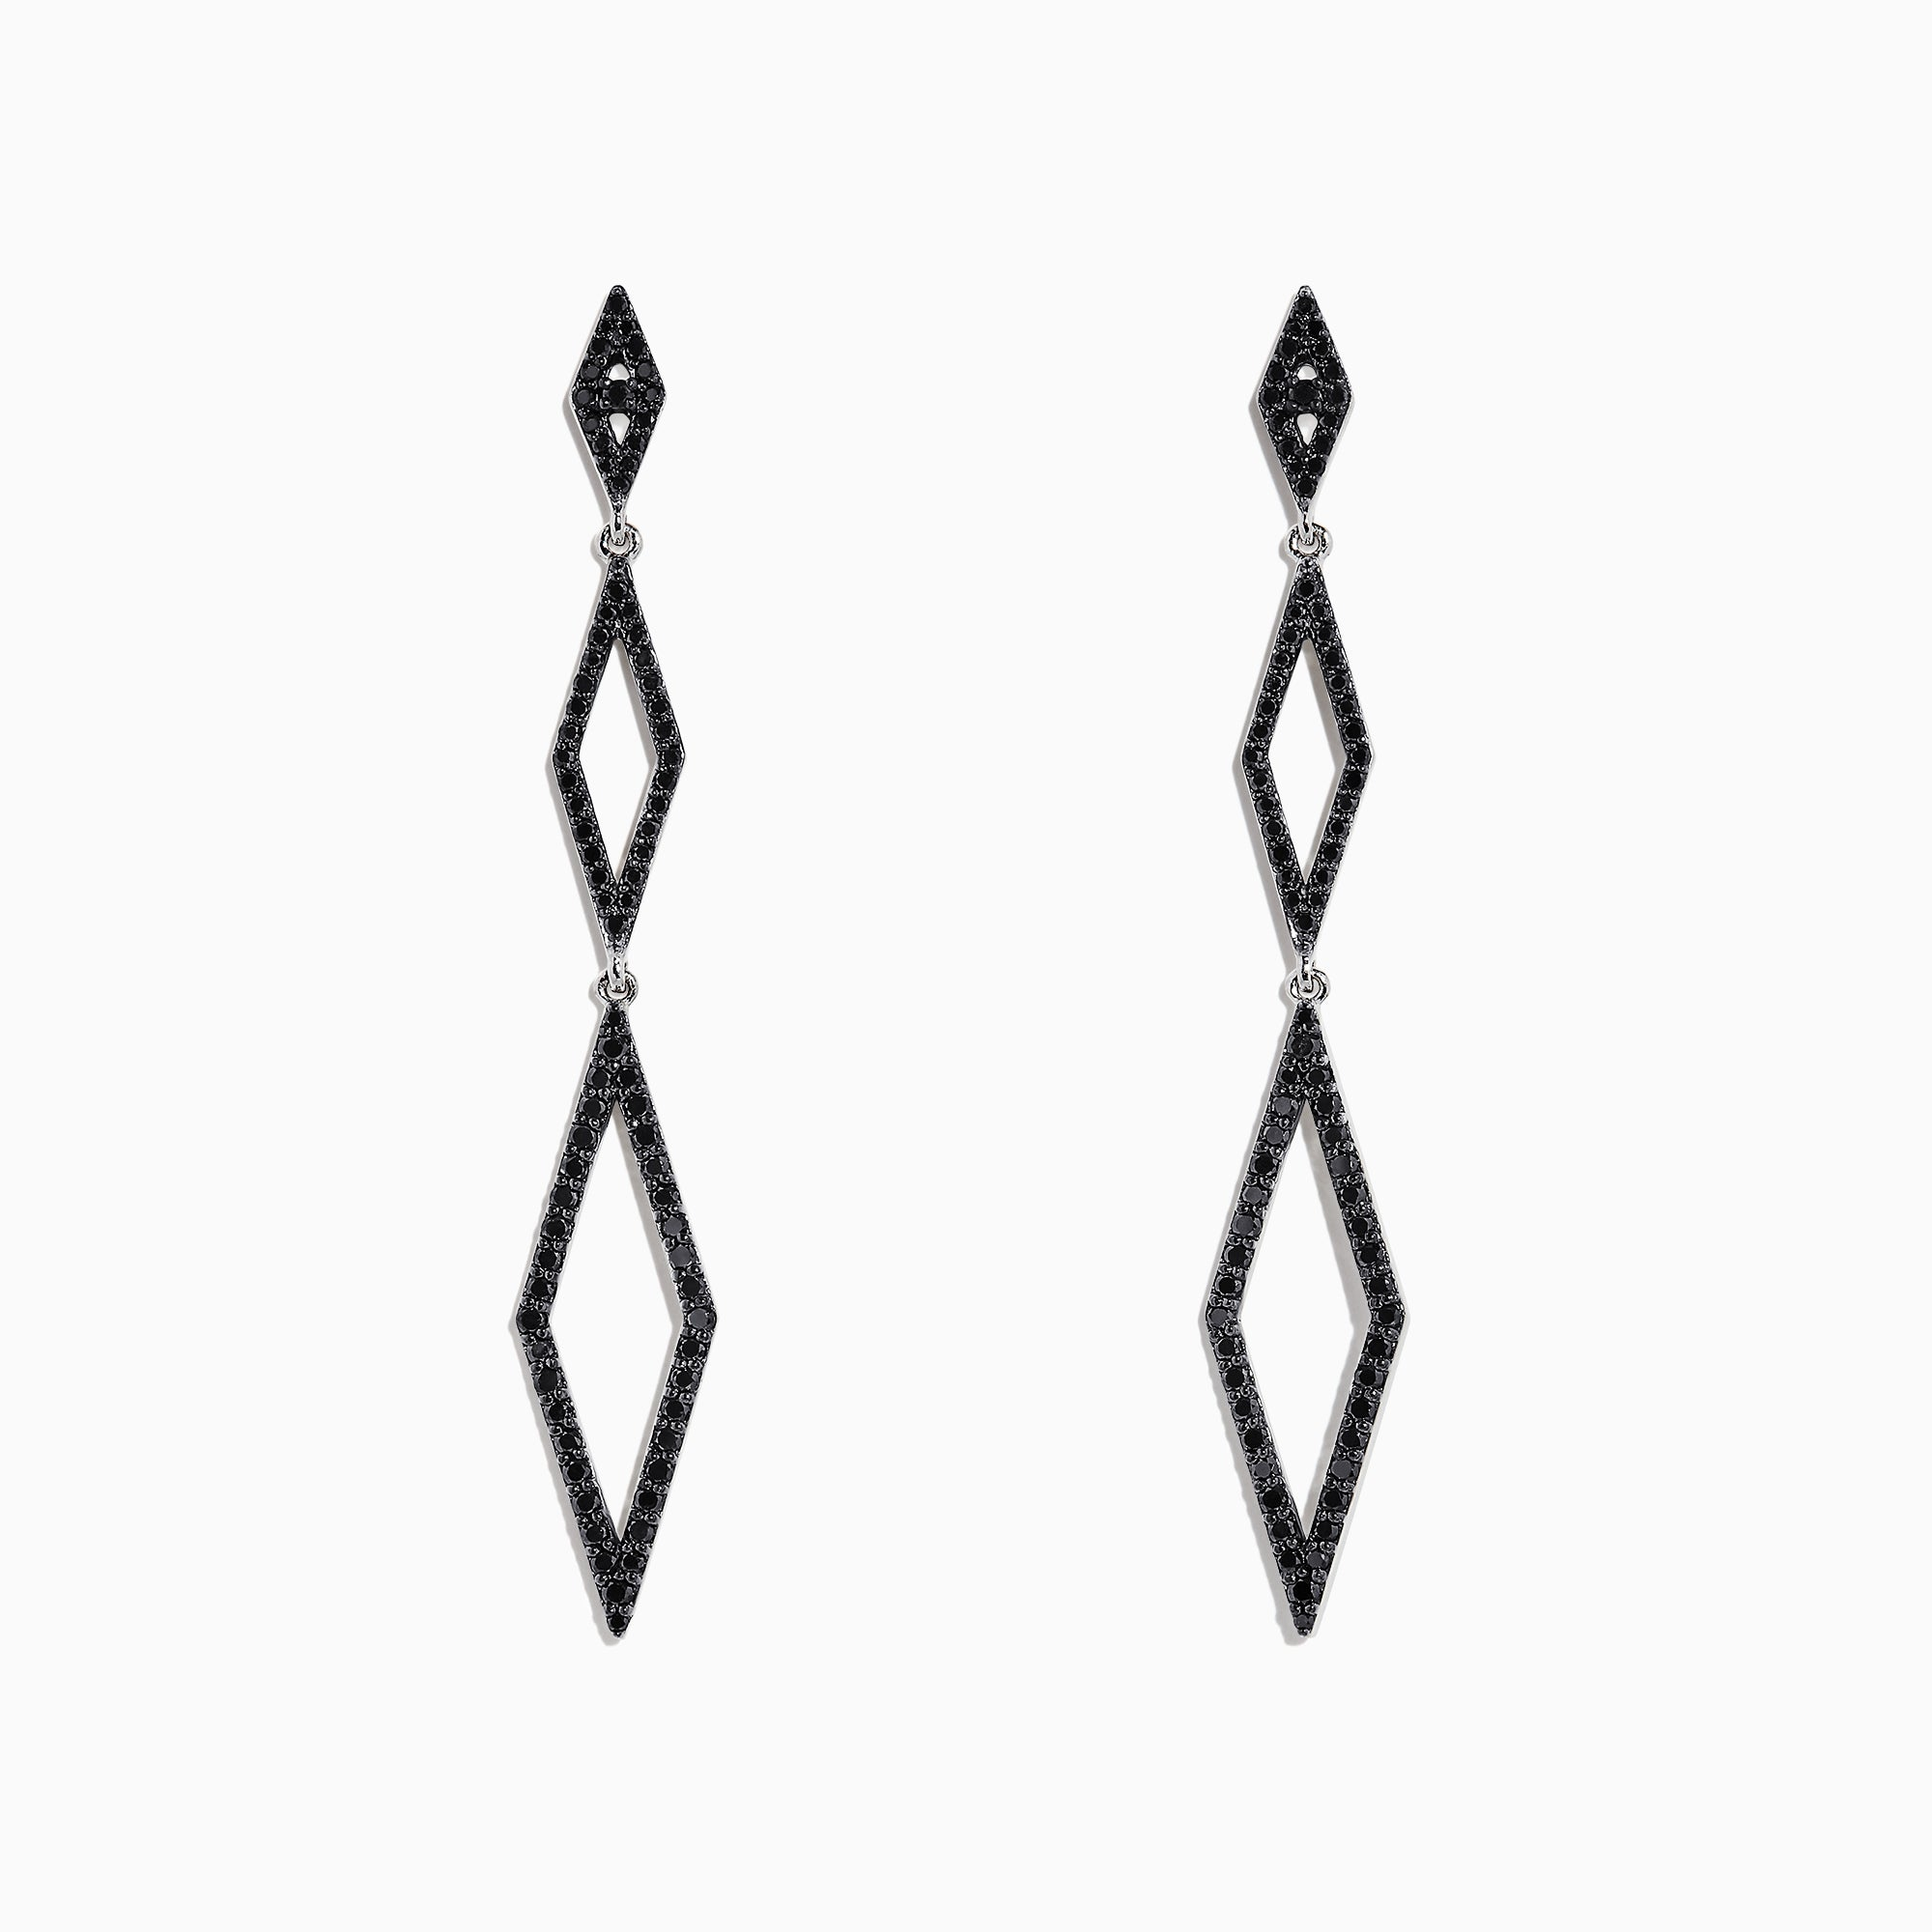 Effy 14K White Gold Black and White Diamond Earrings, 1.16 TCW